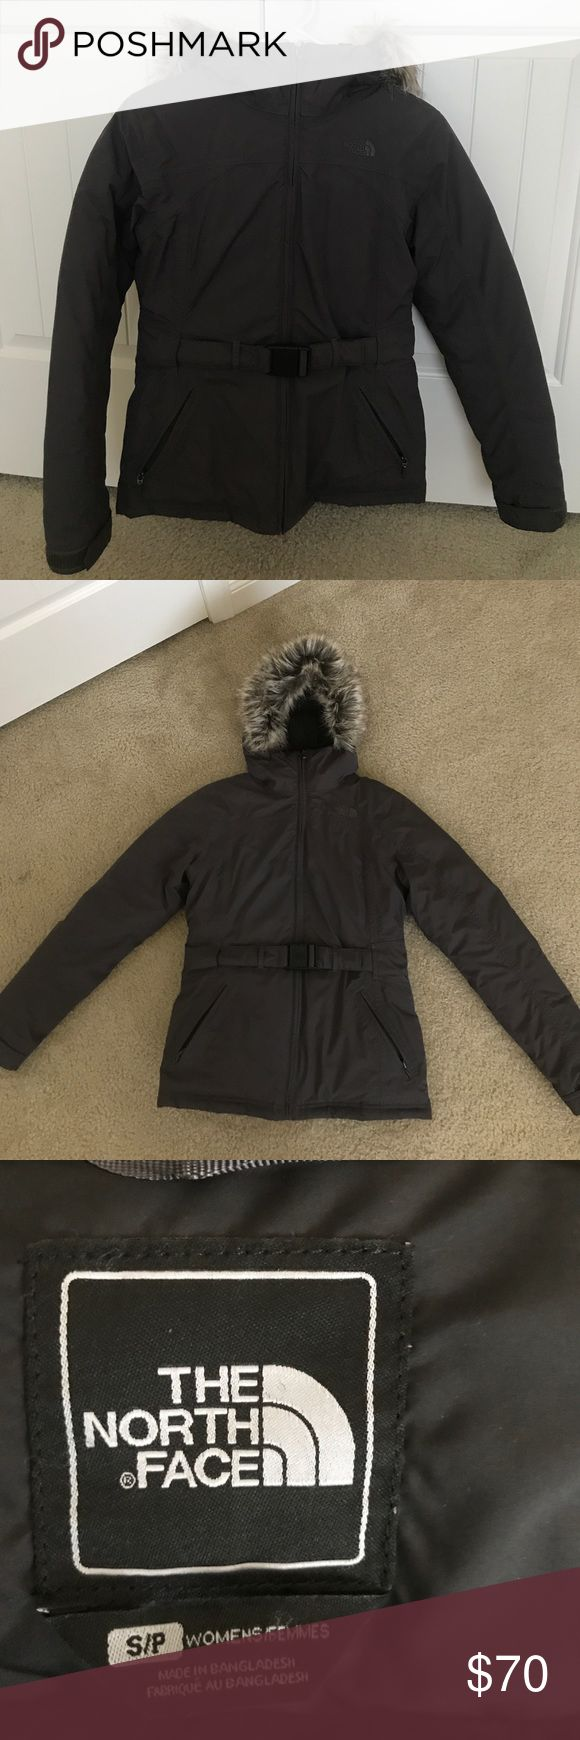 North Face Jacket The North Face Hyvent Jacket with Removable Fur hoodie has a good condition. Size S. The North Face Jackets & Coats